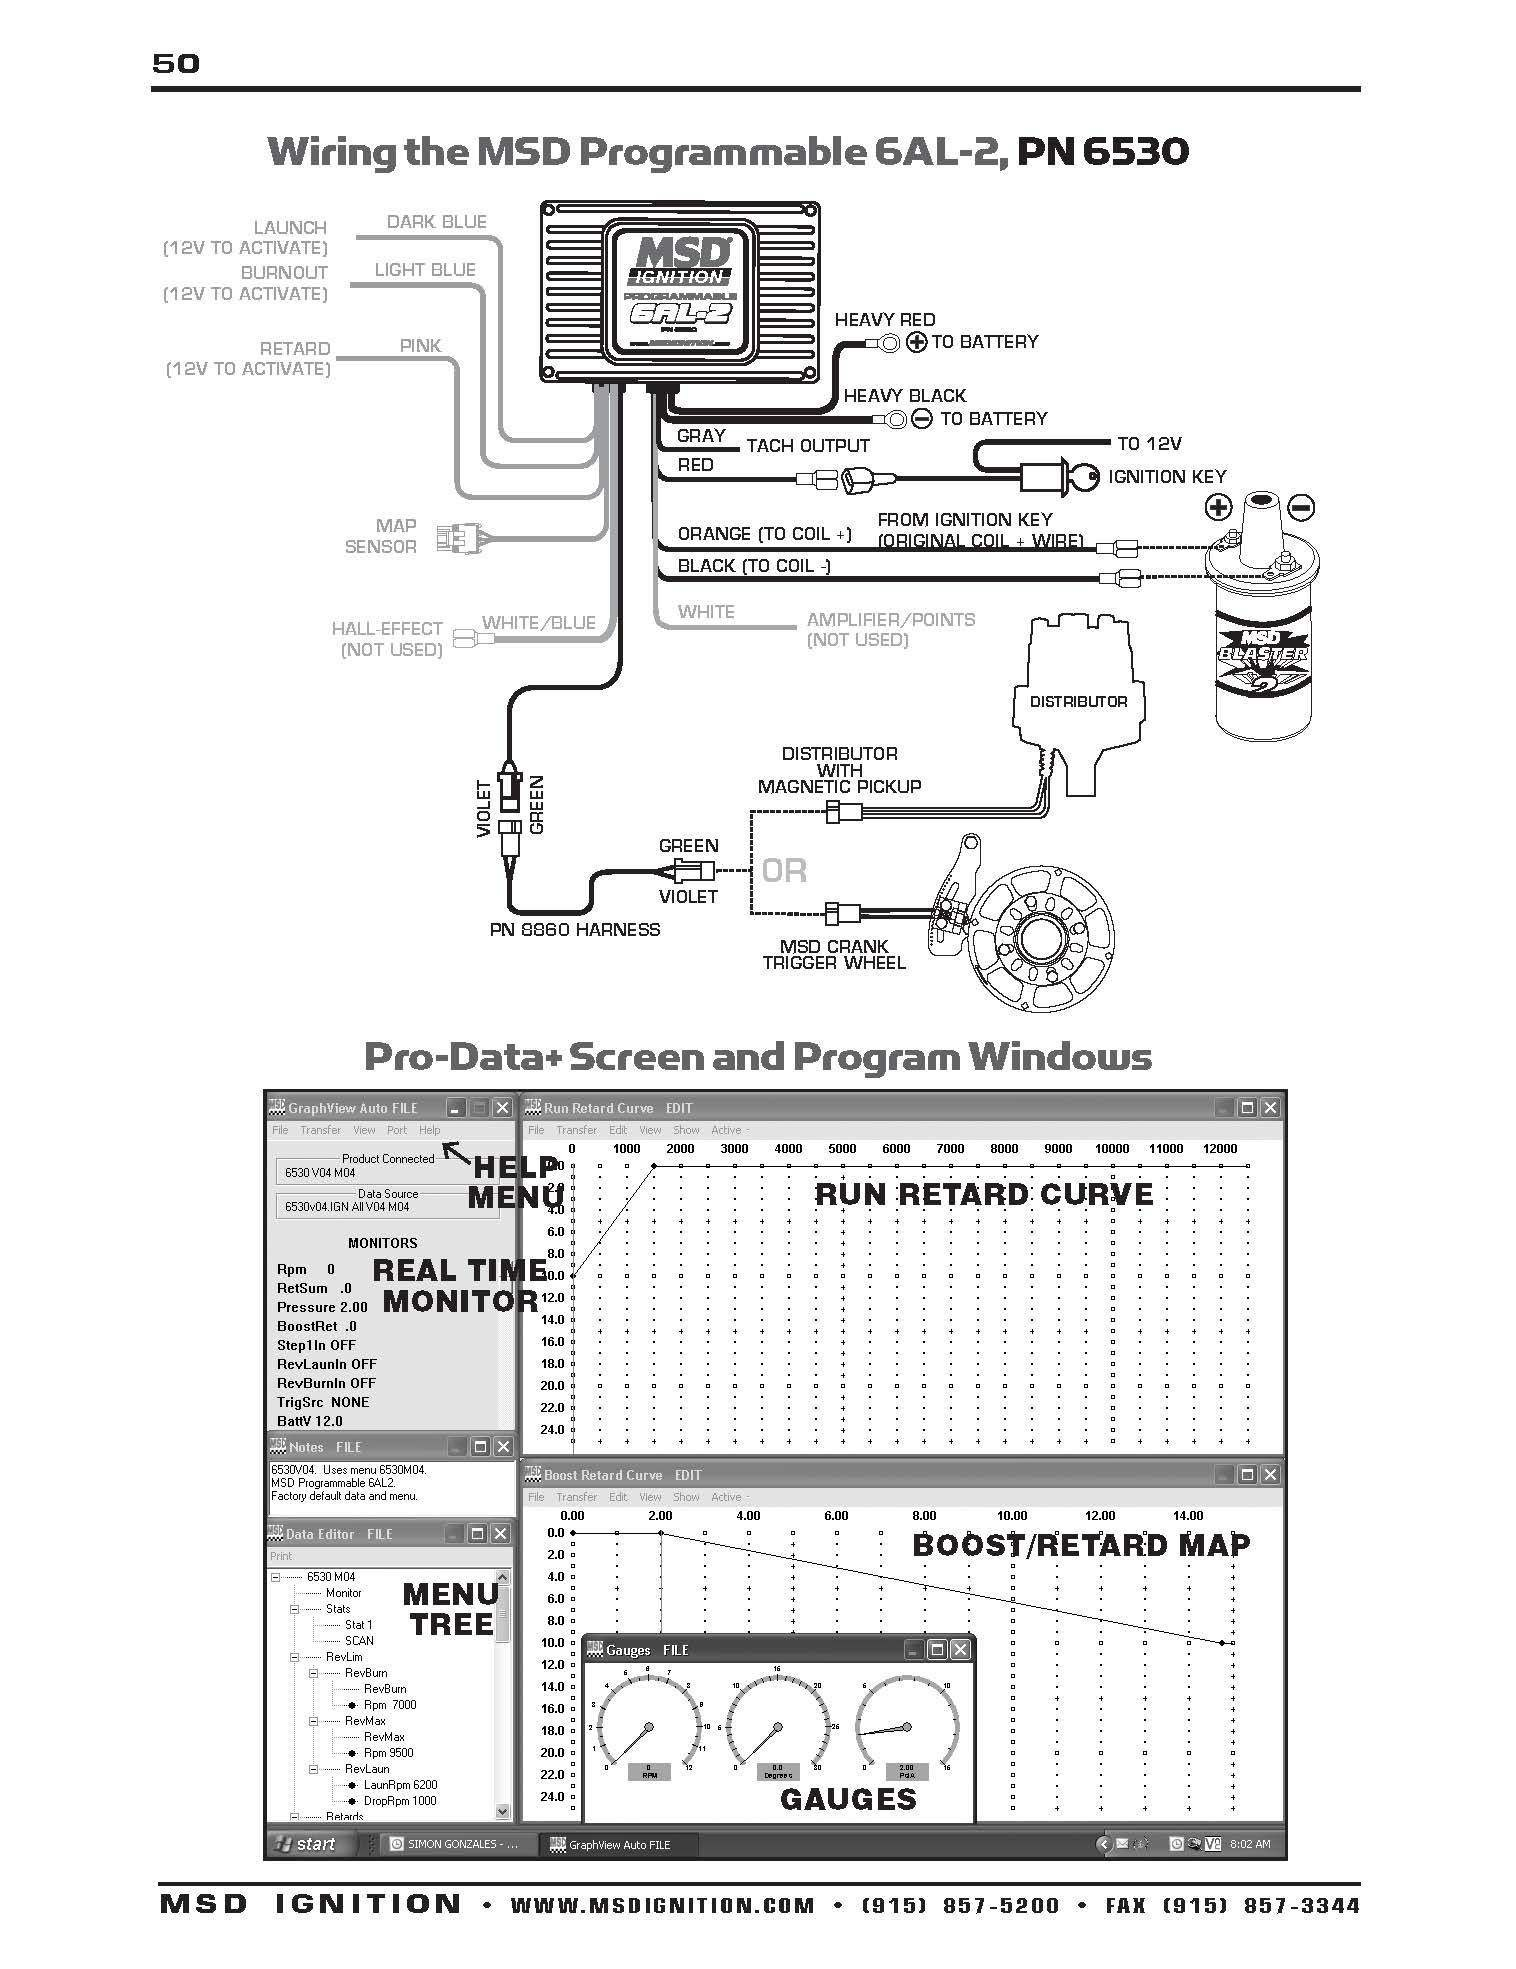 Msd Pn 6425 Wiring Diagram Chevy Hei Wiring with Msd 6al to Diagram for Pn 6425 Wiring Diagram Of Msd Pn 6425 Wiring Diagram Msd 6al 2 Wiring